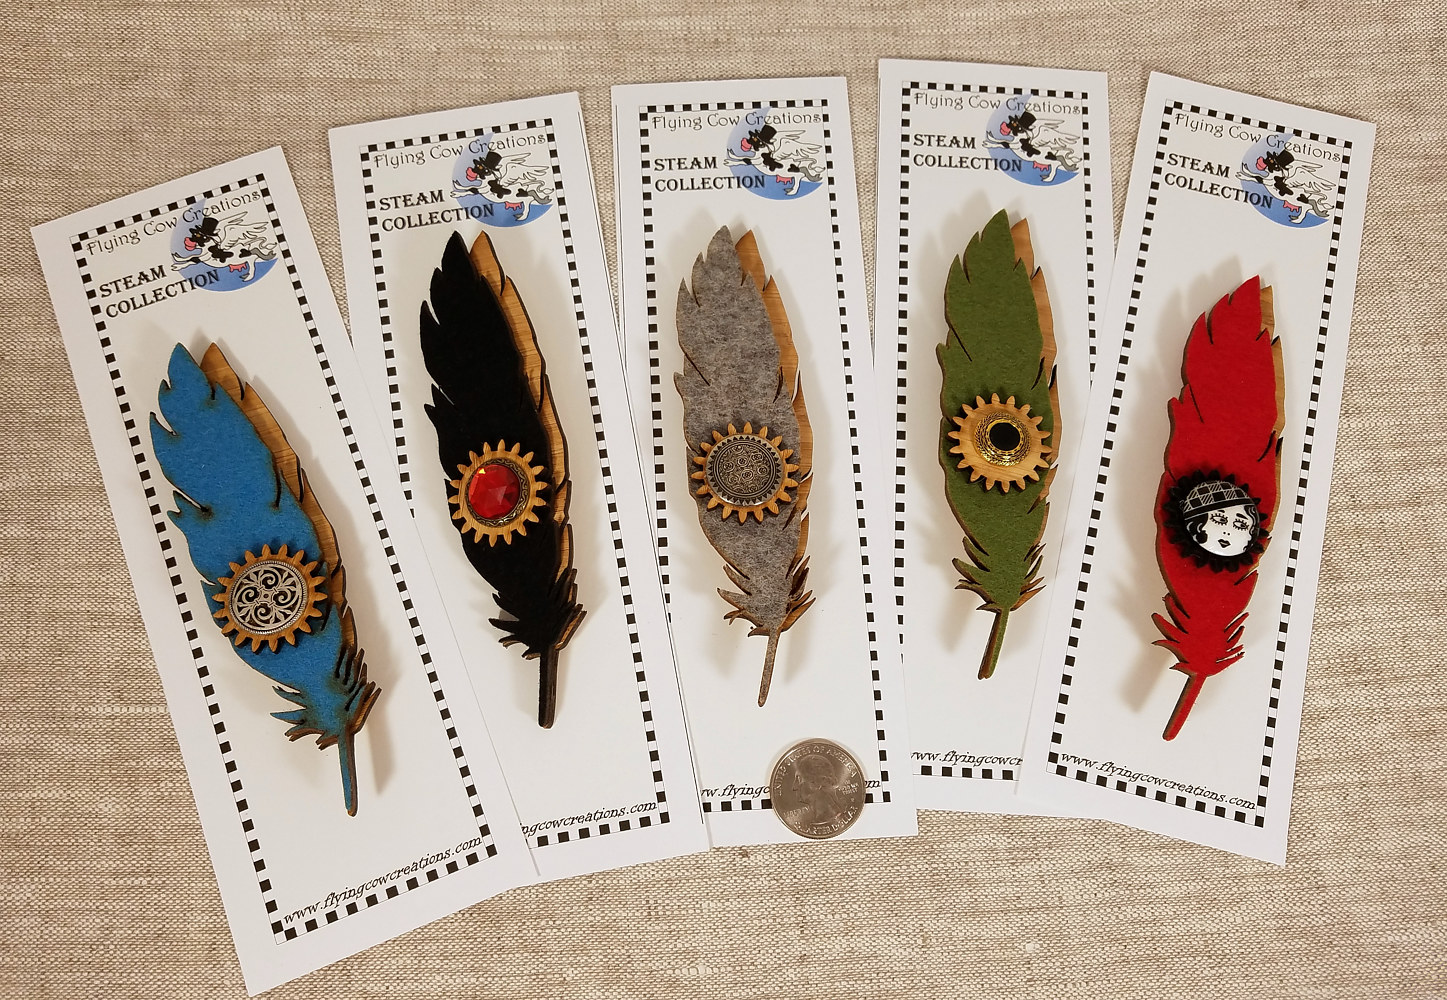 feather pins by Valerie Johnson